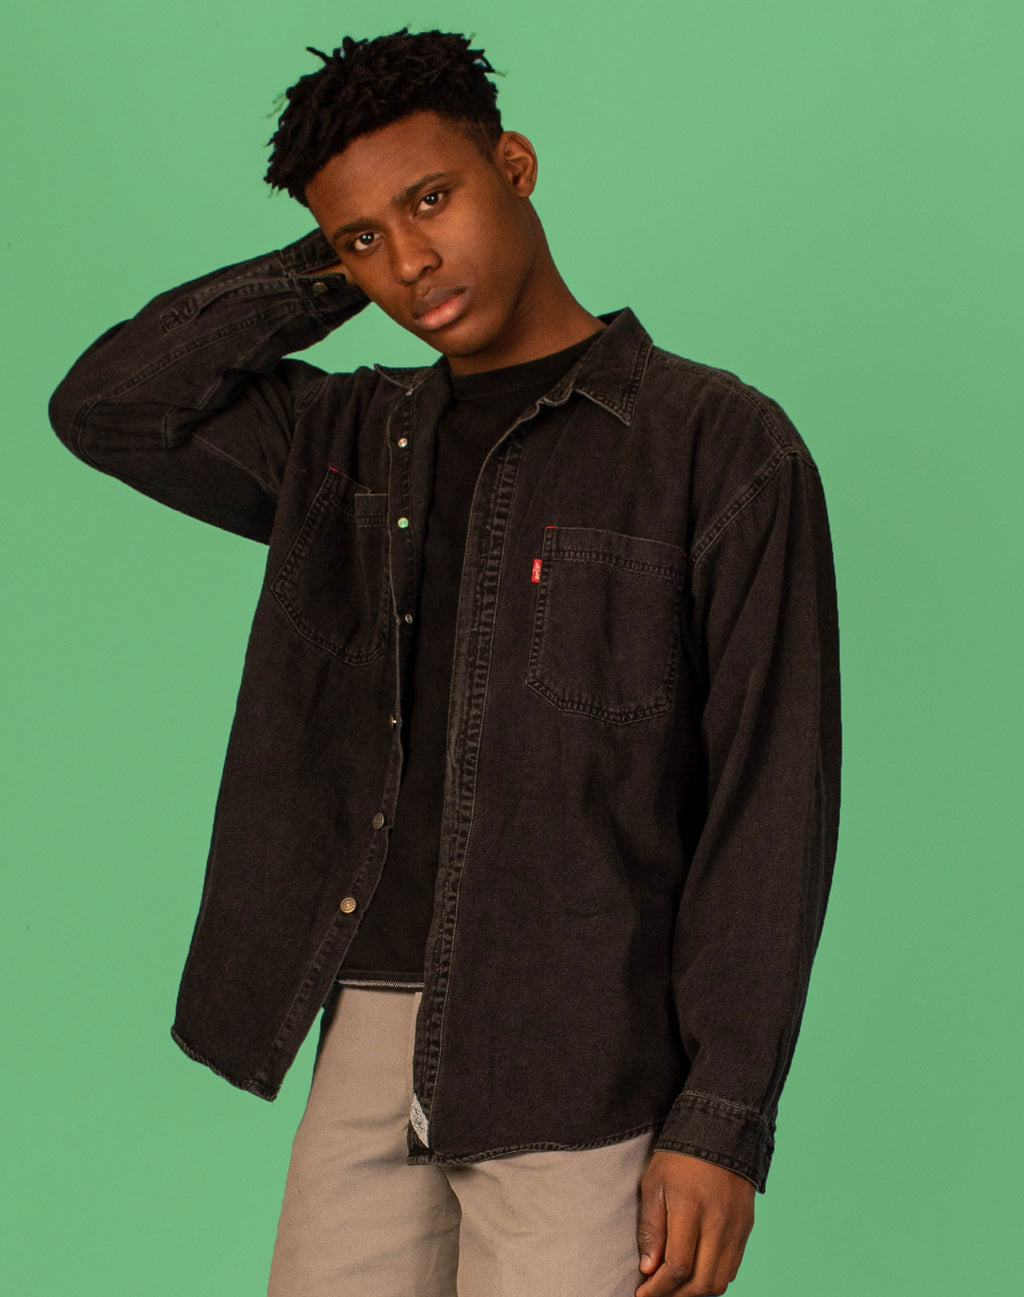 LEVI'S DENIM CHARCOAL SHIRT